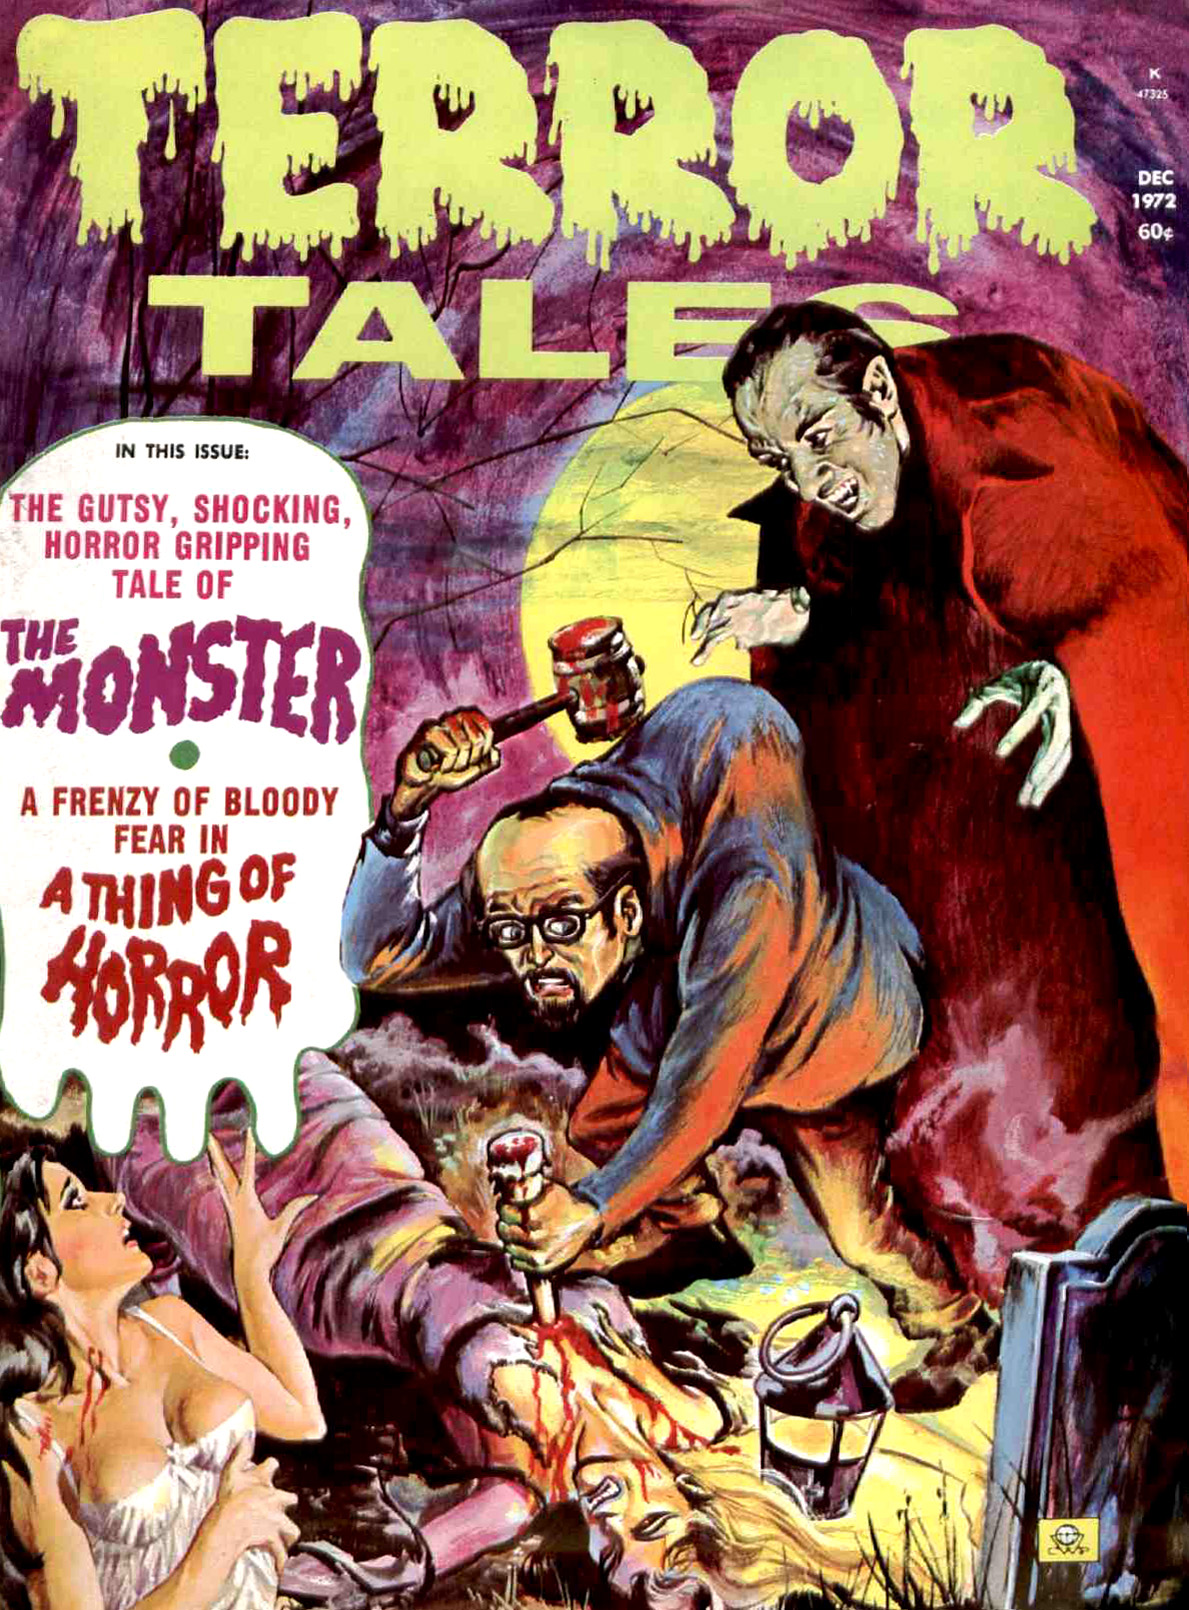 Terror Tales Vol. 04 #7 (Eerie Publications, 1972)